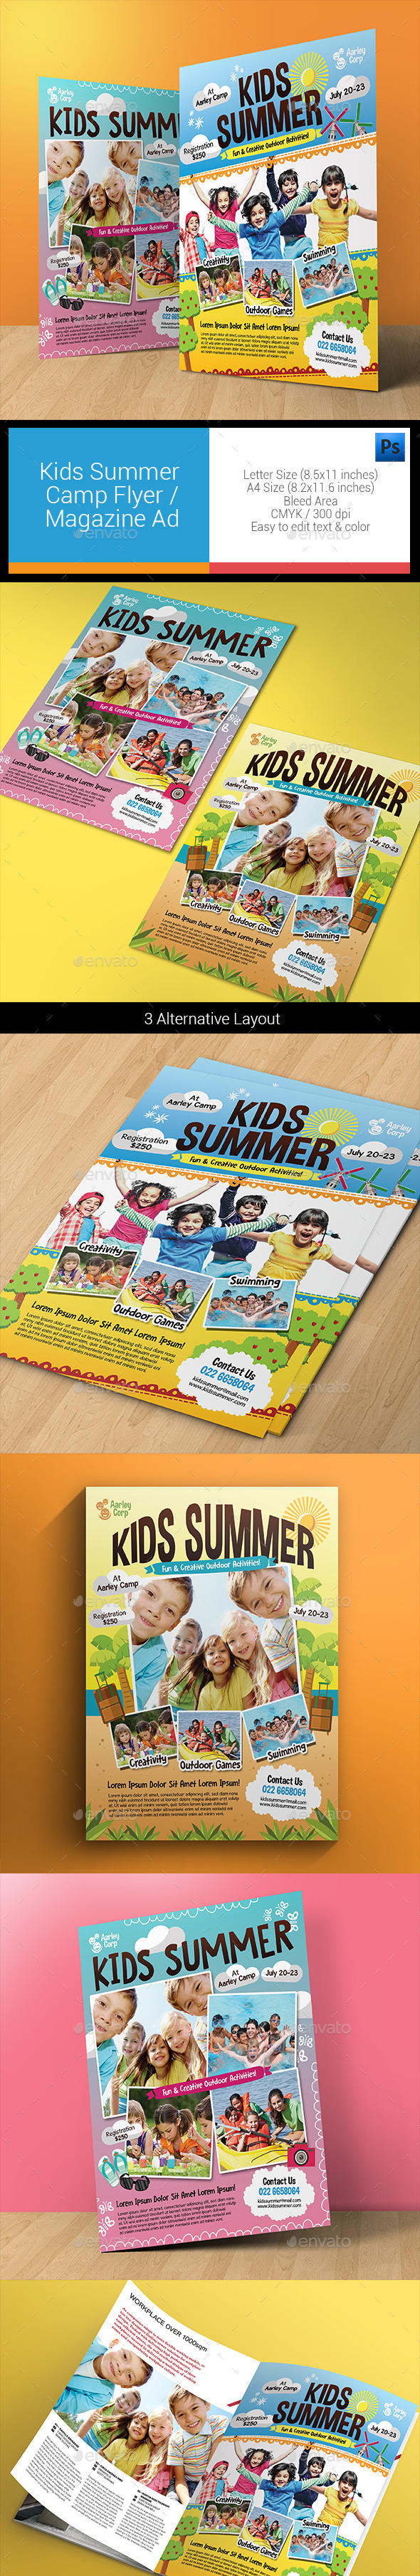 Kids Summer Camp Flyers / Magazine Ad - Holidays Events